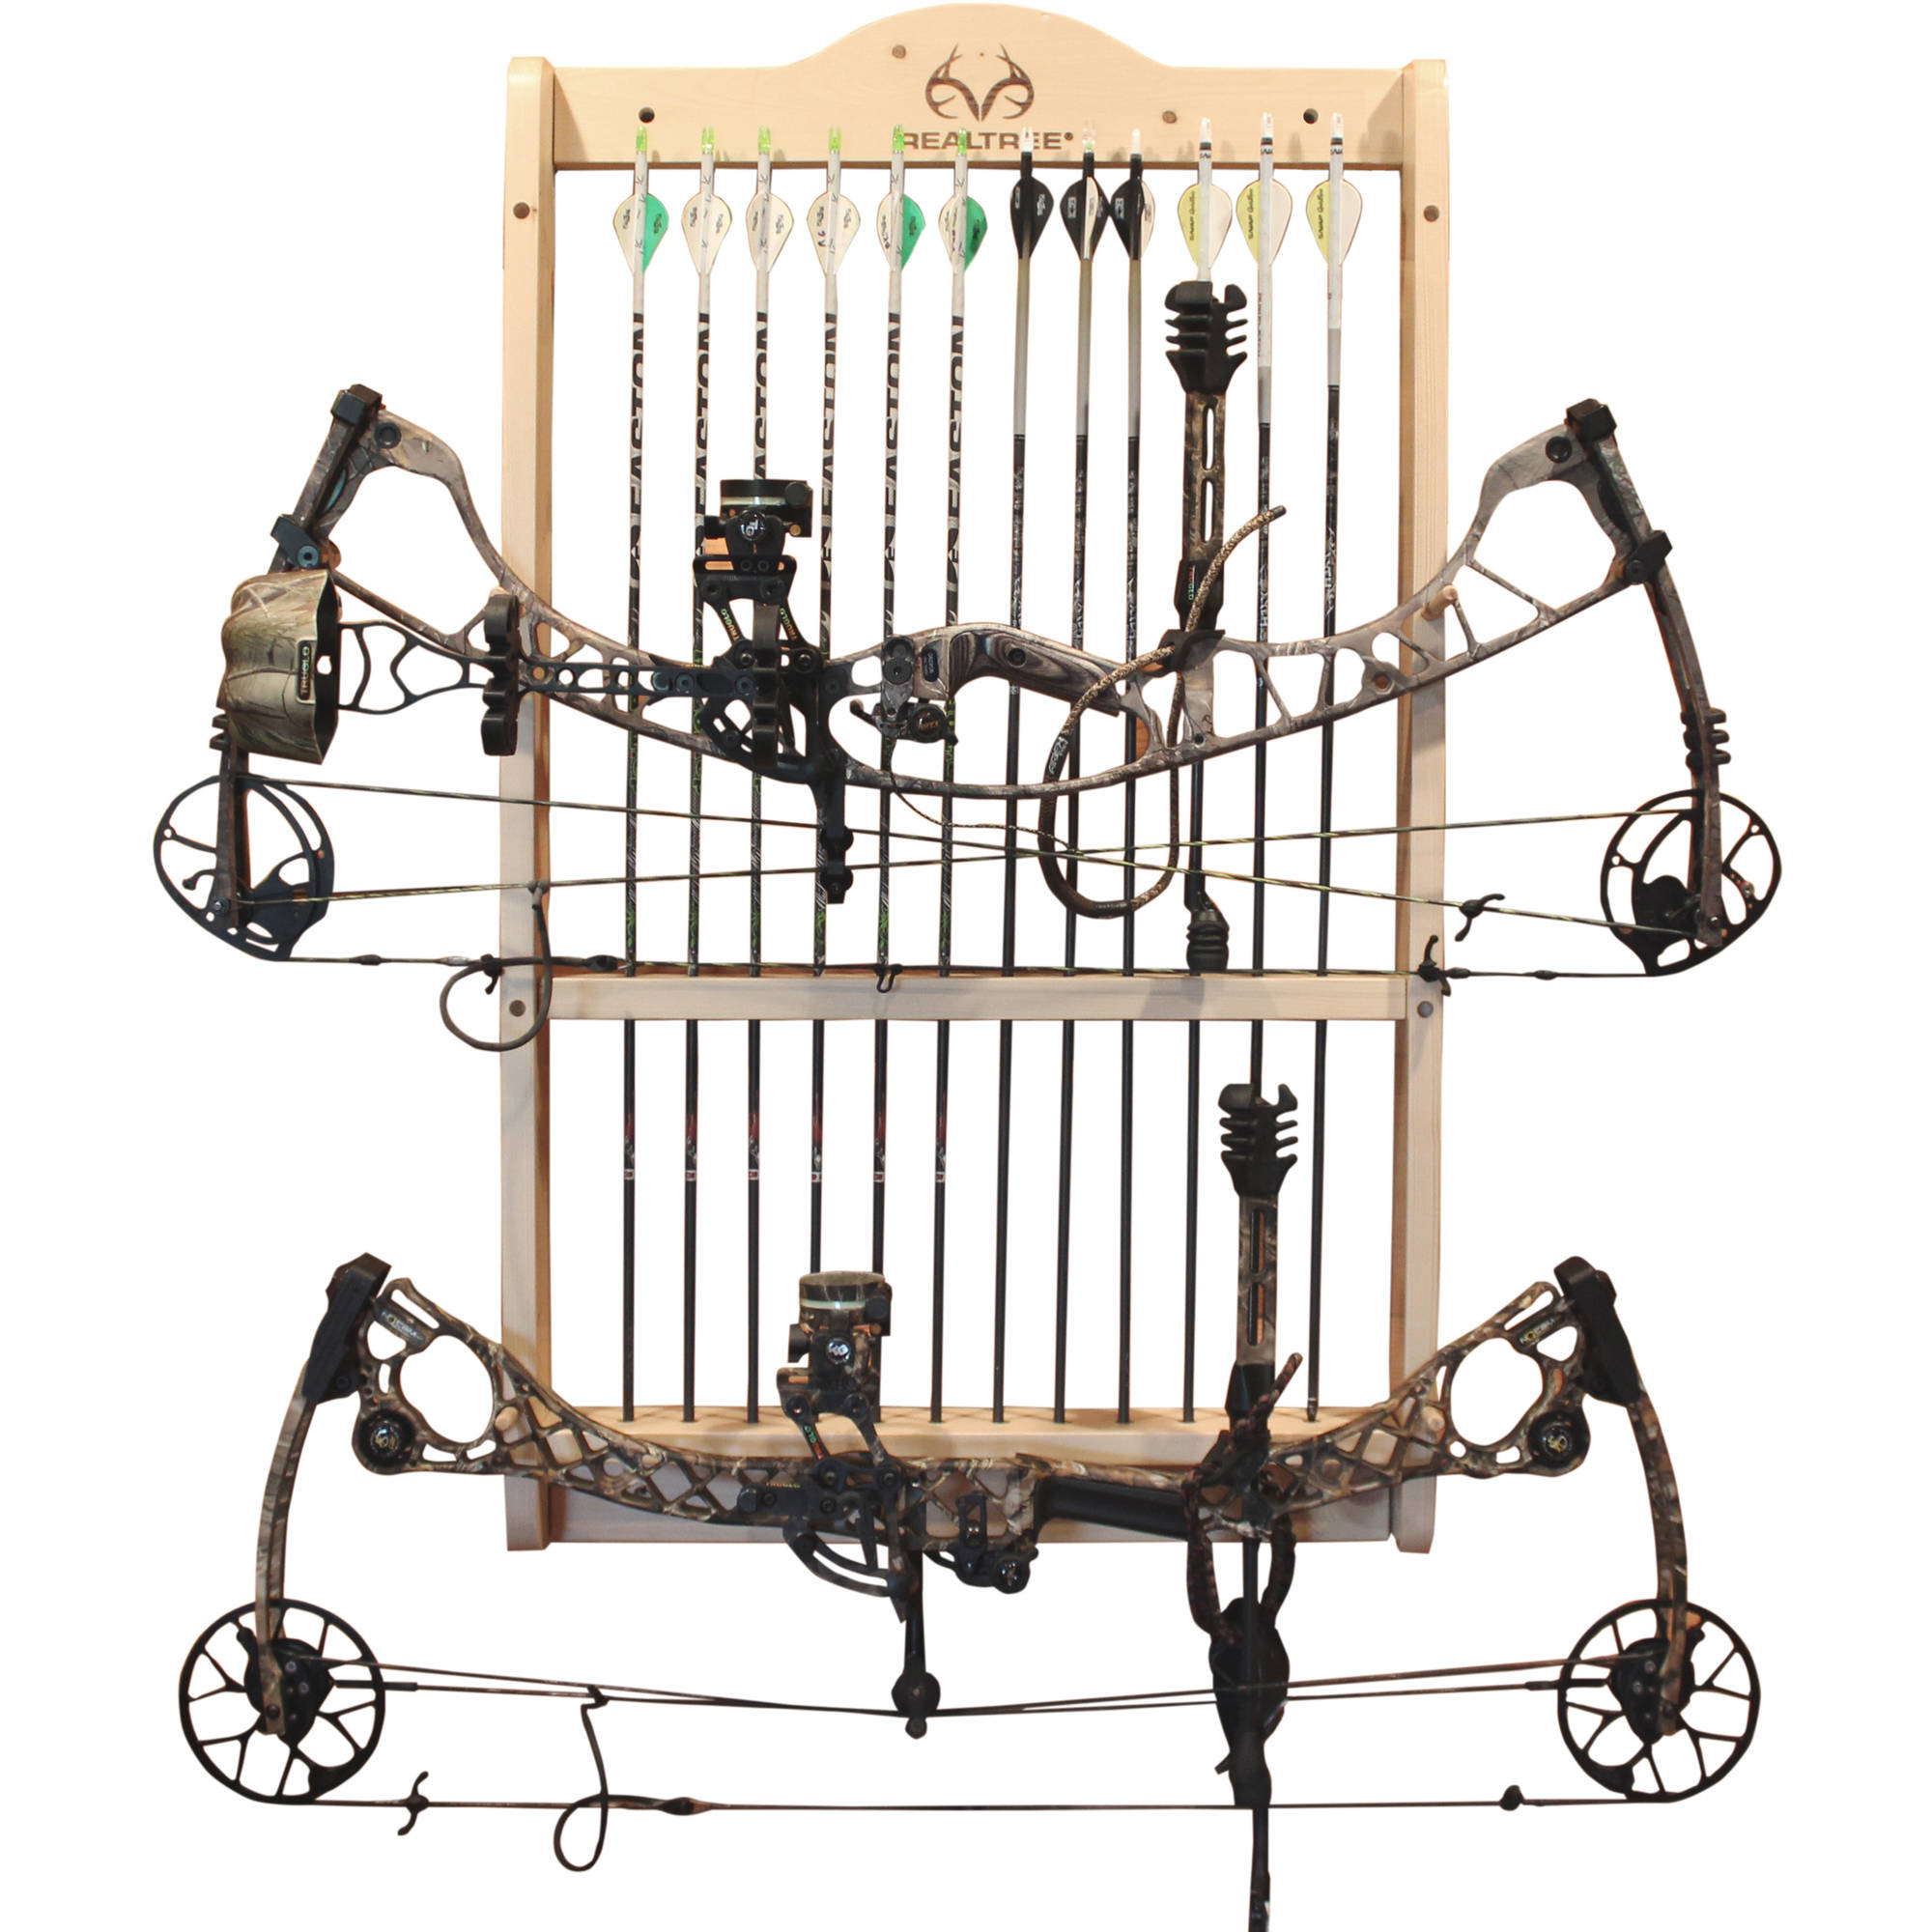 Rush Creek Creations REALTREE 2 Compound Bow 12 Arrow Wall Storage Rack by Rush Creek Creations